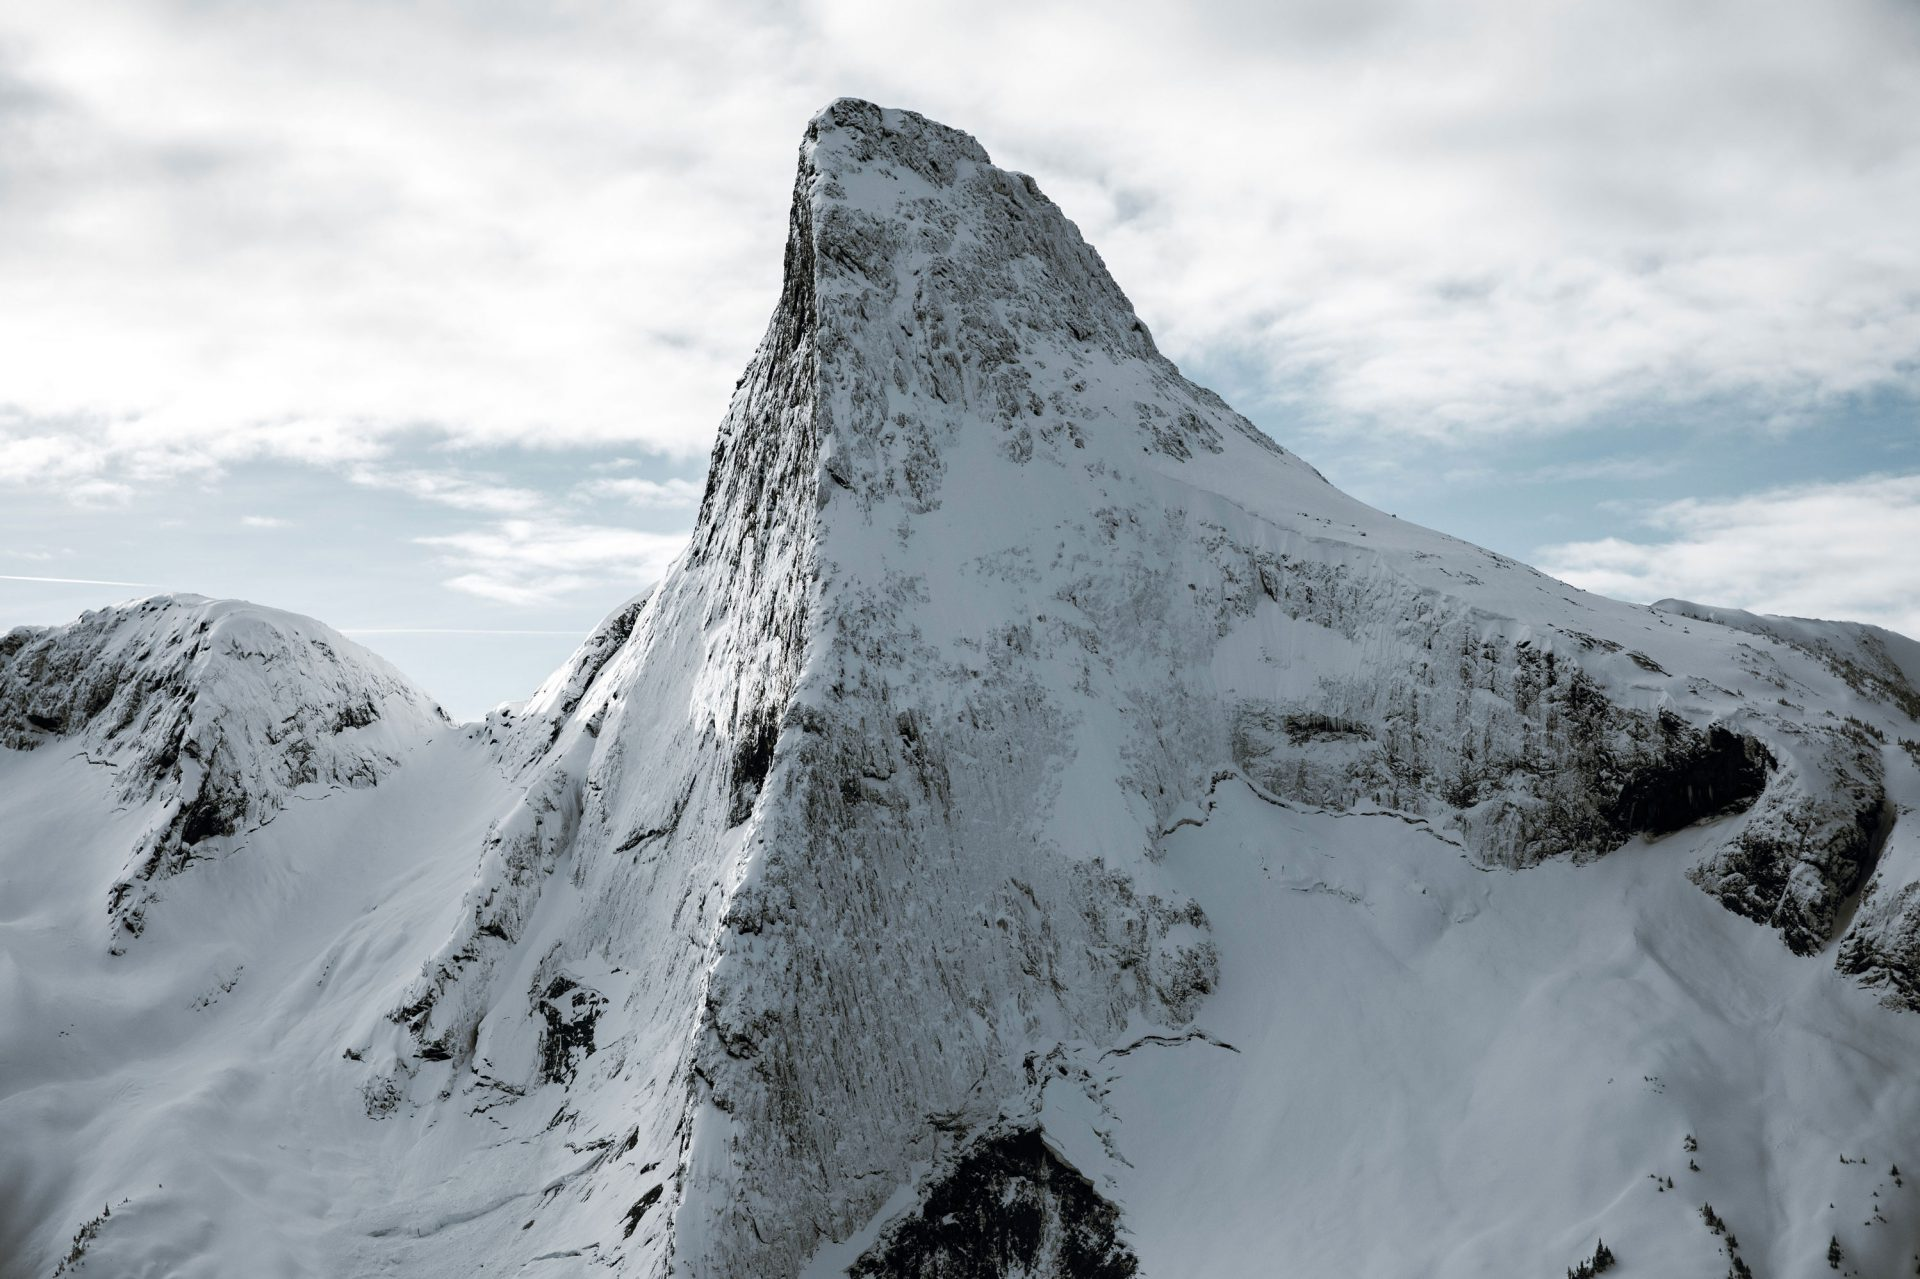 Snowy mountain peak viewed from the Librico Helicopter